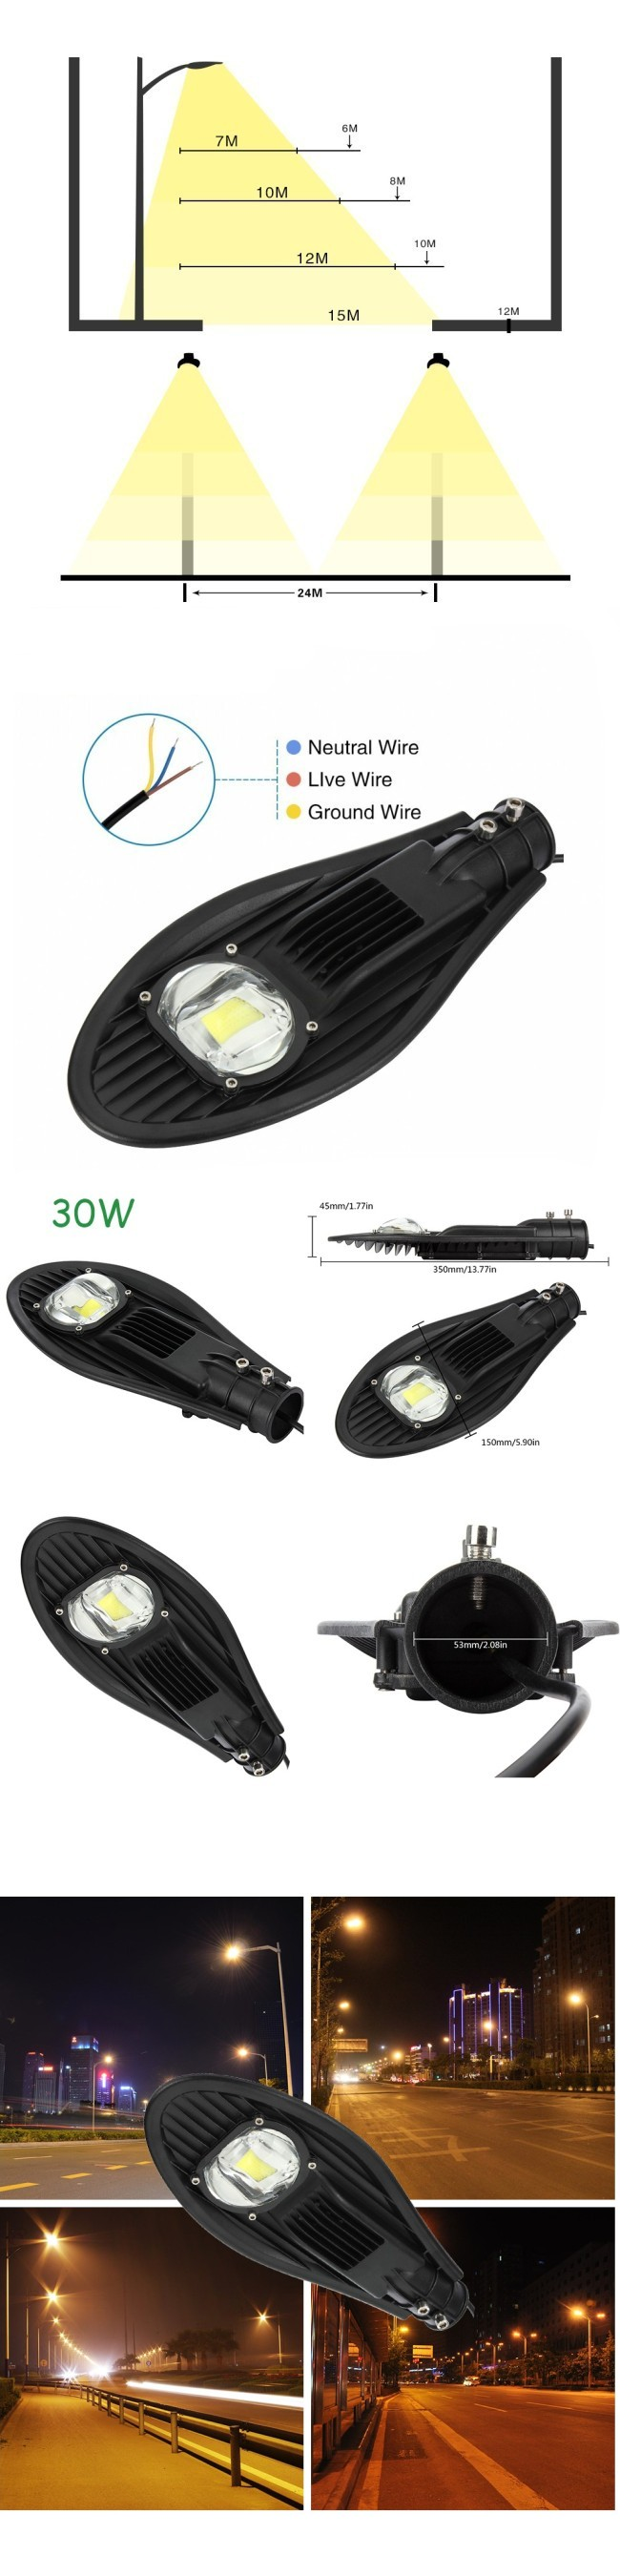 AC DC 24V 12V 50W LED Energy Saving Outdoor Solar Street Light